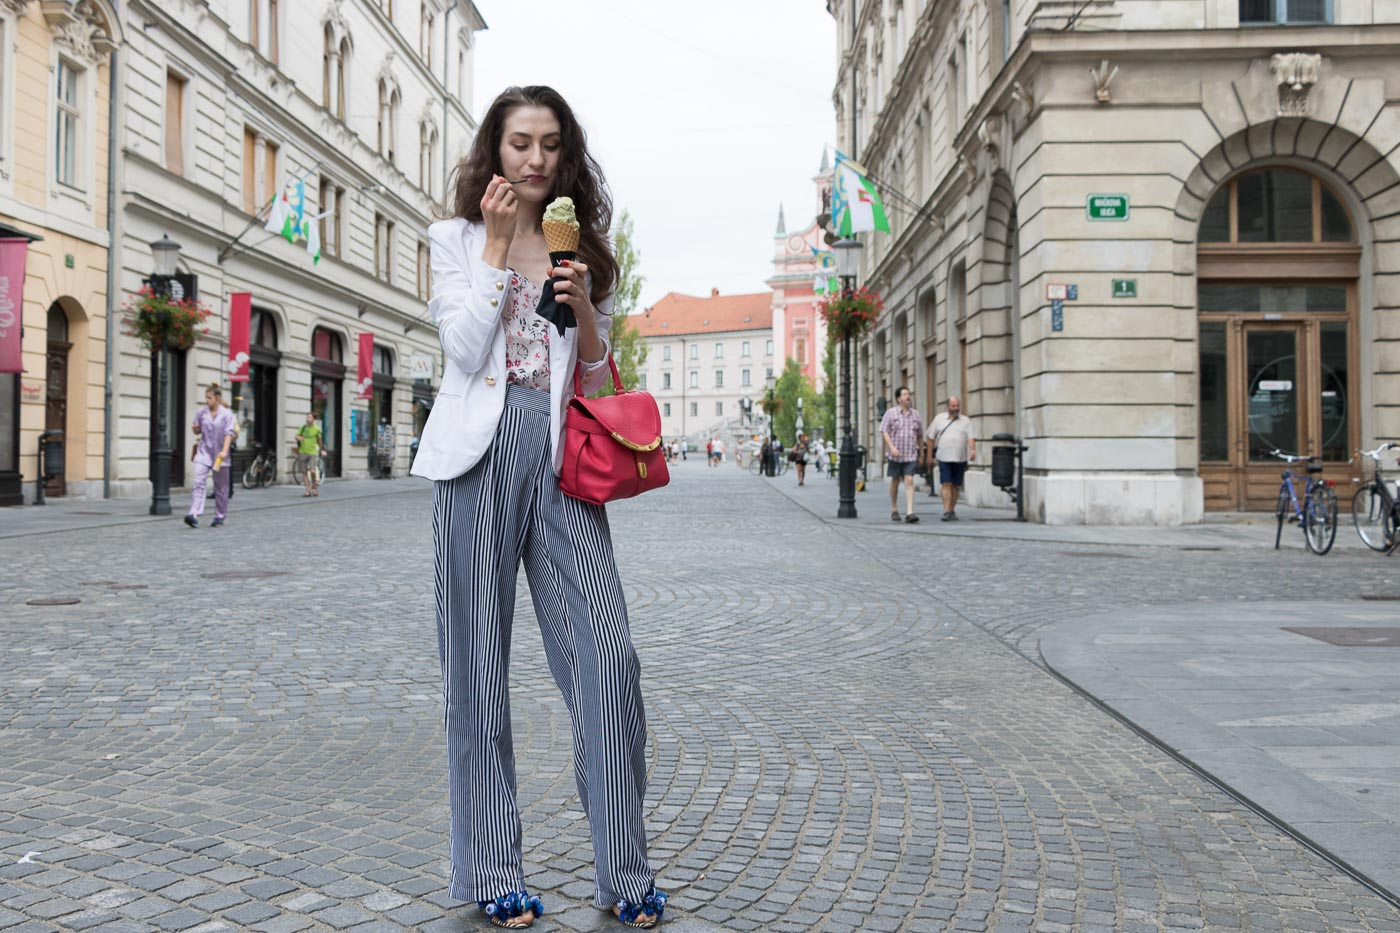 Fashion Blogger Veronika Lipar of Brunette from Wall Street eating pistachio ice cream on the street wearing palazzo striped Michael Kors pants, white blazer, floral slip top from Stella McCartney and blue Aquazzura sandals